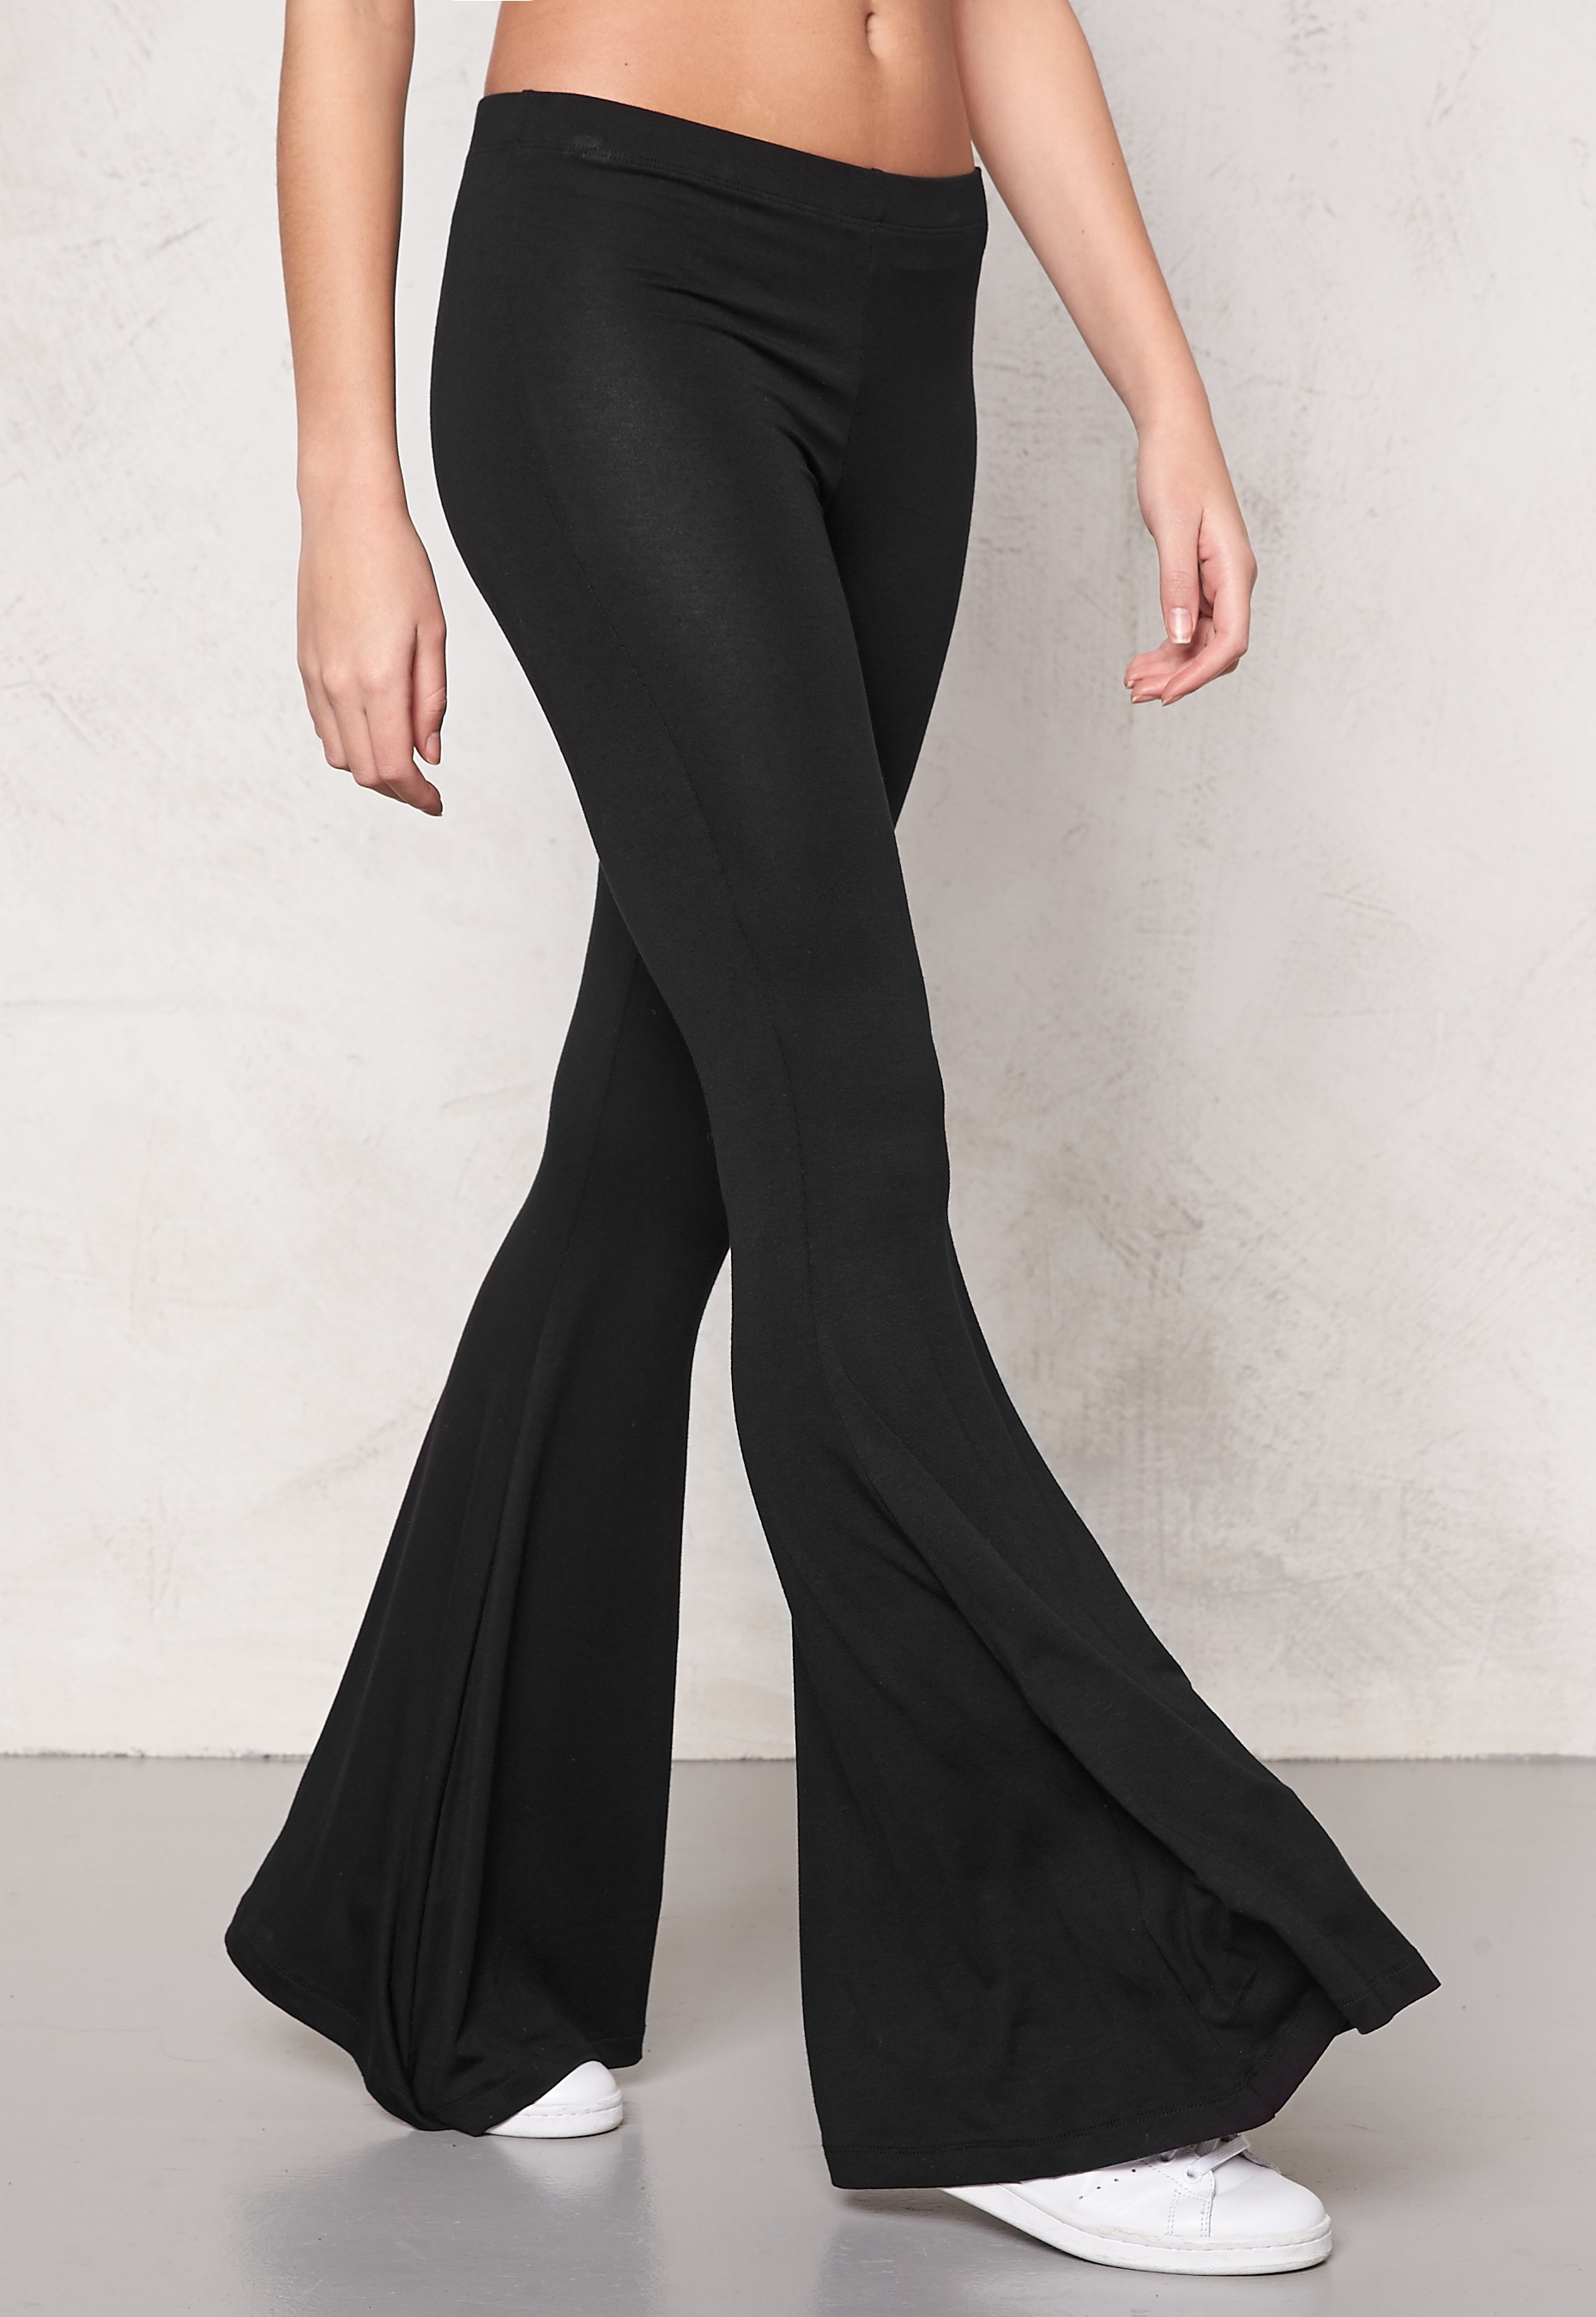 Buy flared high-waist trousers - Black at $ at luxurycheckout. Similar products are available.